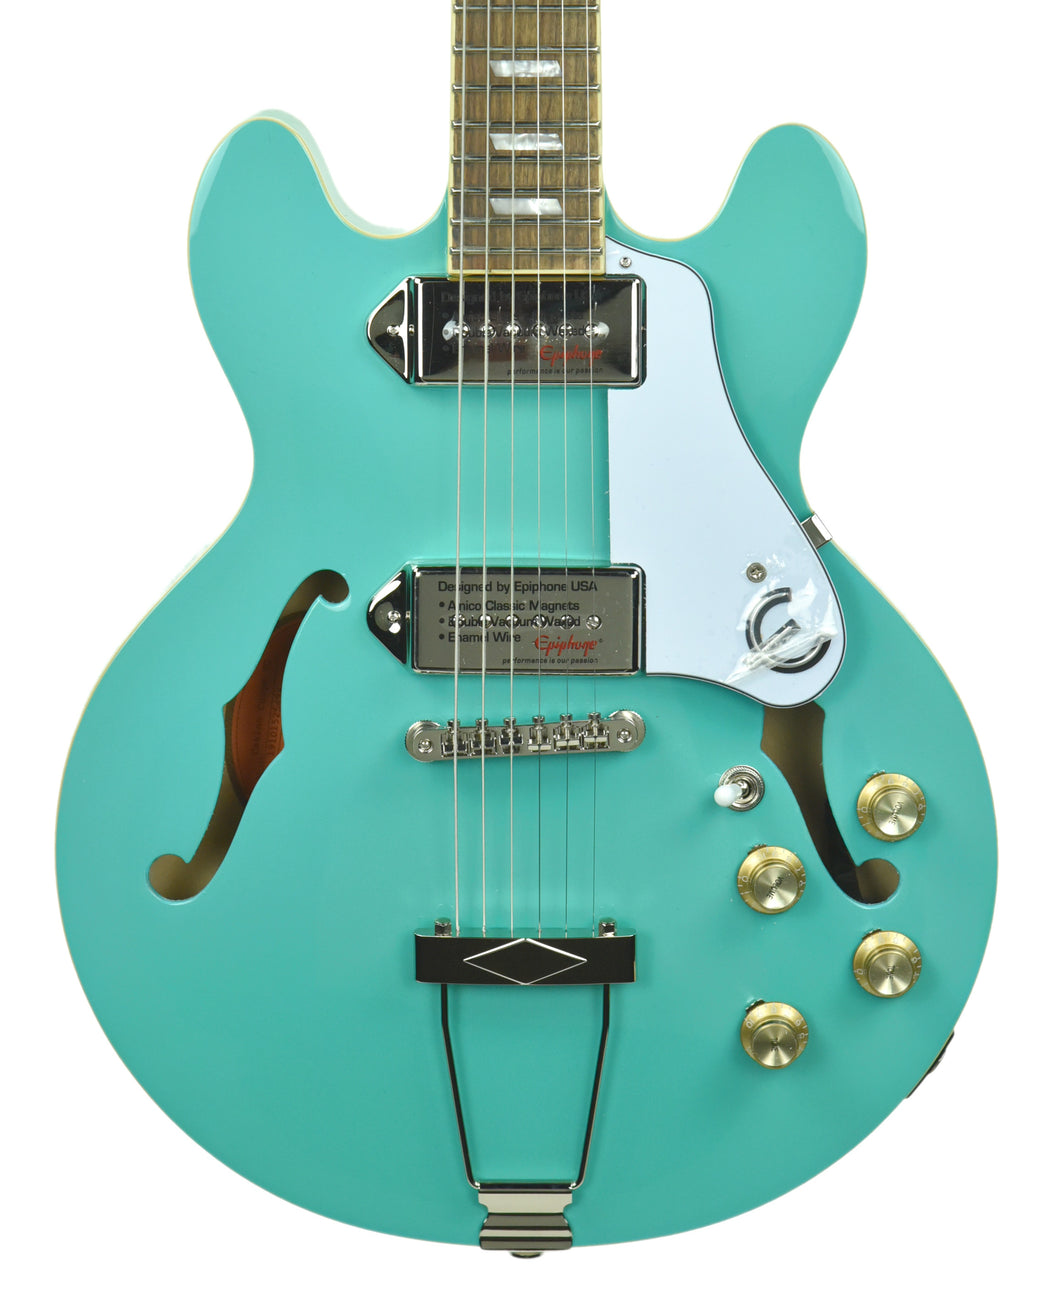 Epiphone Casino Coupe Archtop Electric Guitar in Turquoise 19101525494